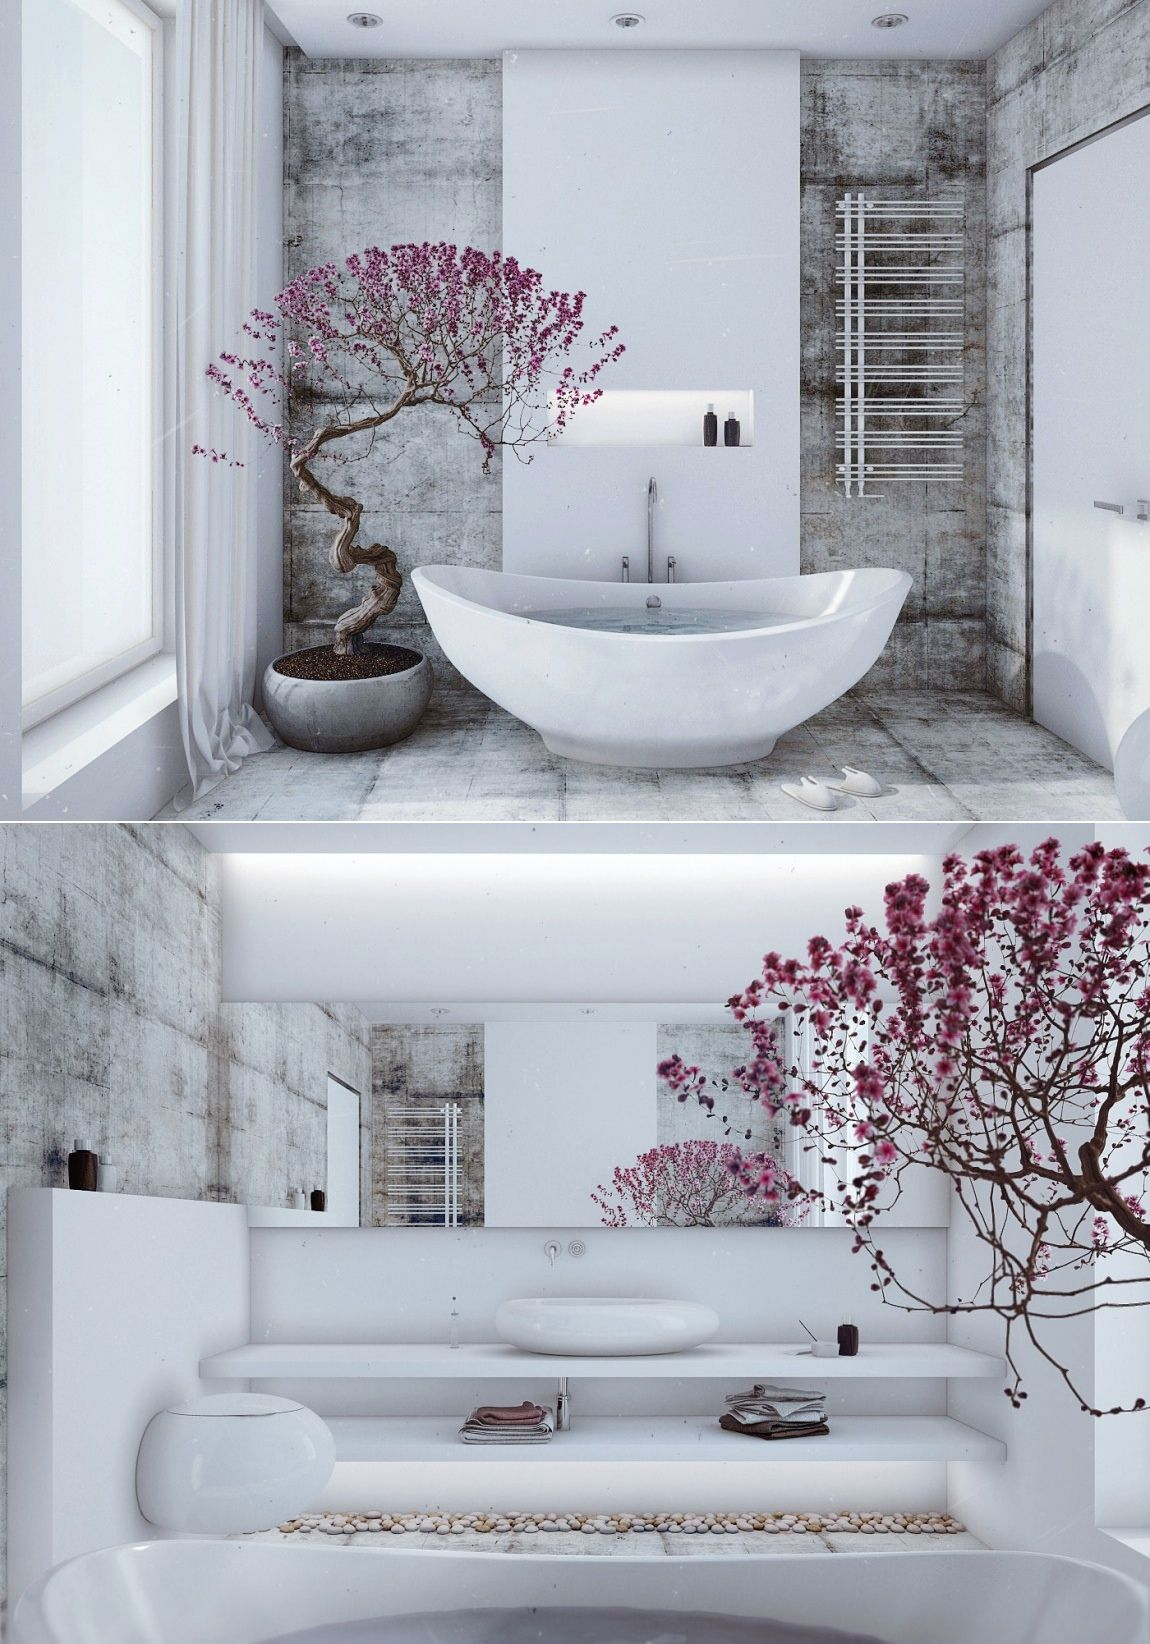 Zen Inspired Interior Design Zen Bathroom Design Zen Bathroom Decor Spa Bathroom Decor